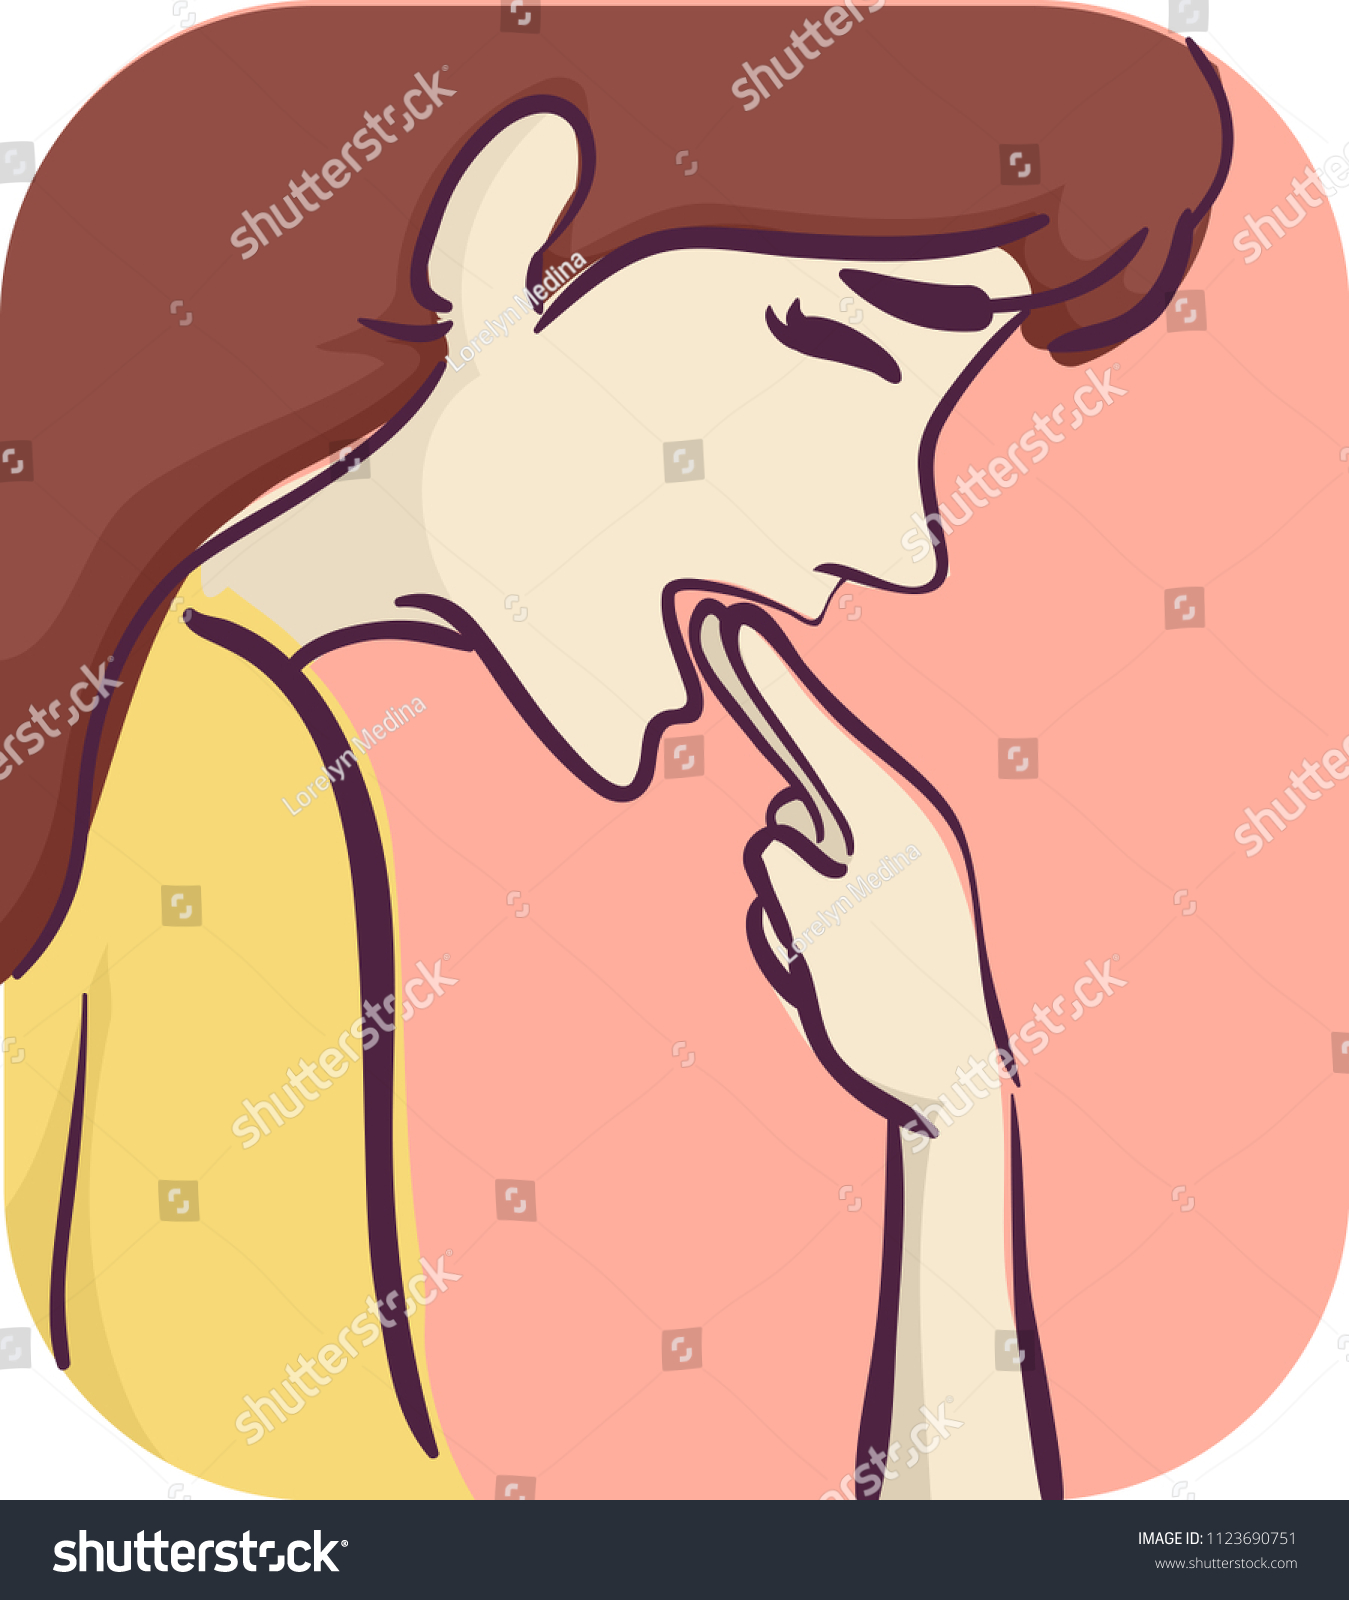 Illustration of a Girl Sticking Fingers Down the Throat to Force Vomiting